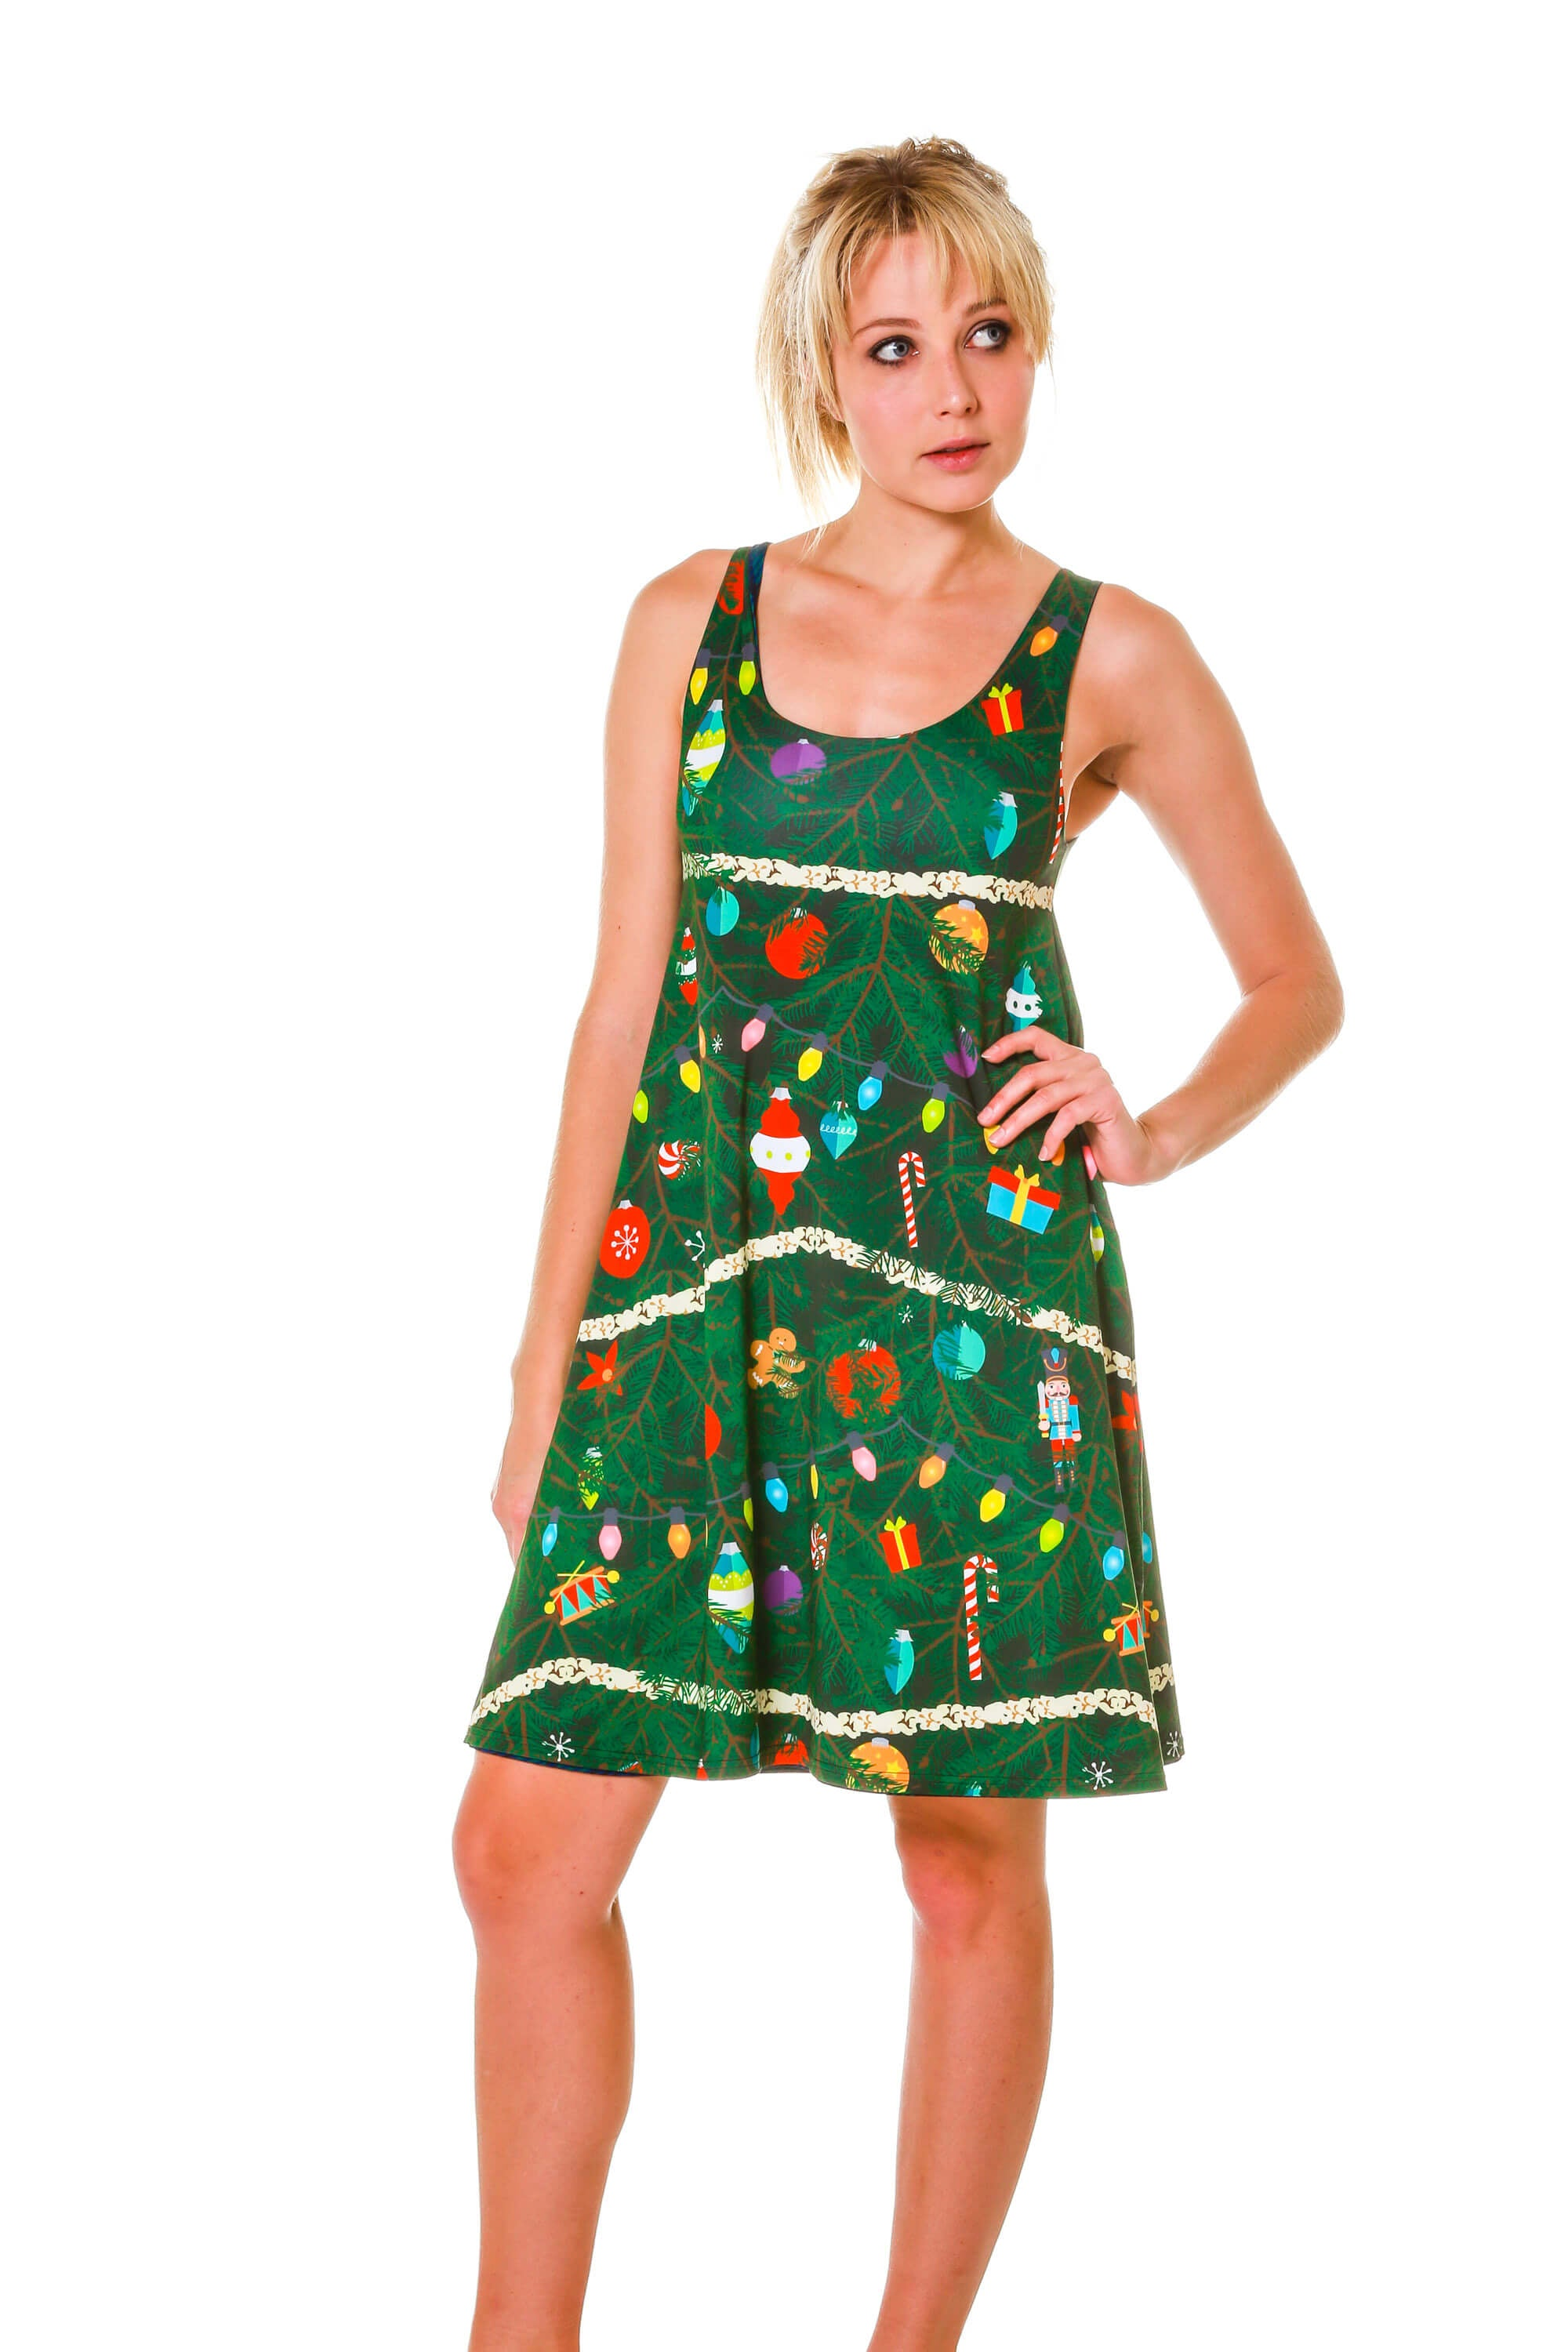 Party Dresses and Holiday Dresses to celebrate the season in style. Shop Party Dresses and Holiday Dresses online and get Free Shipping in Canada on orders over $